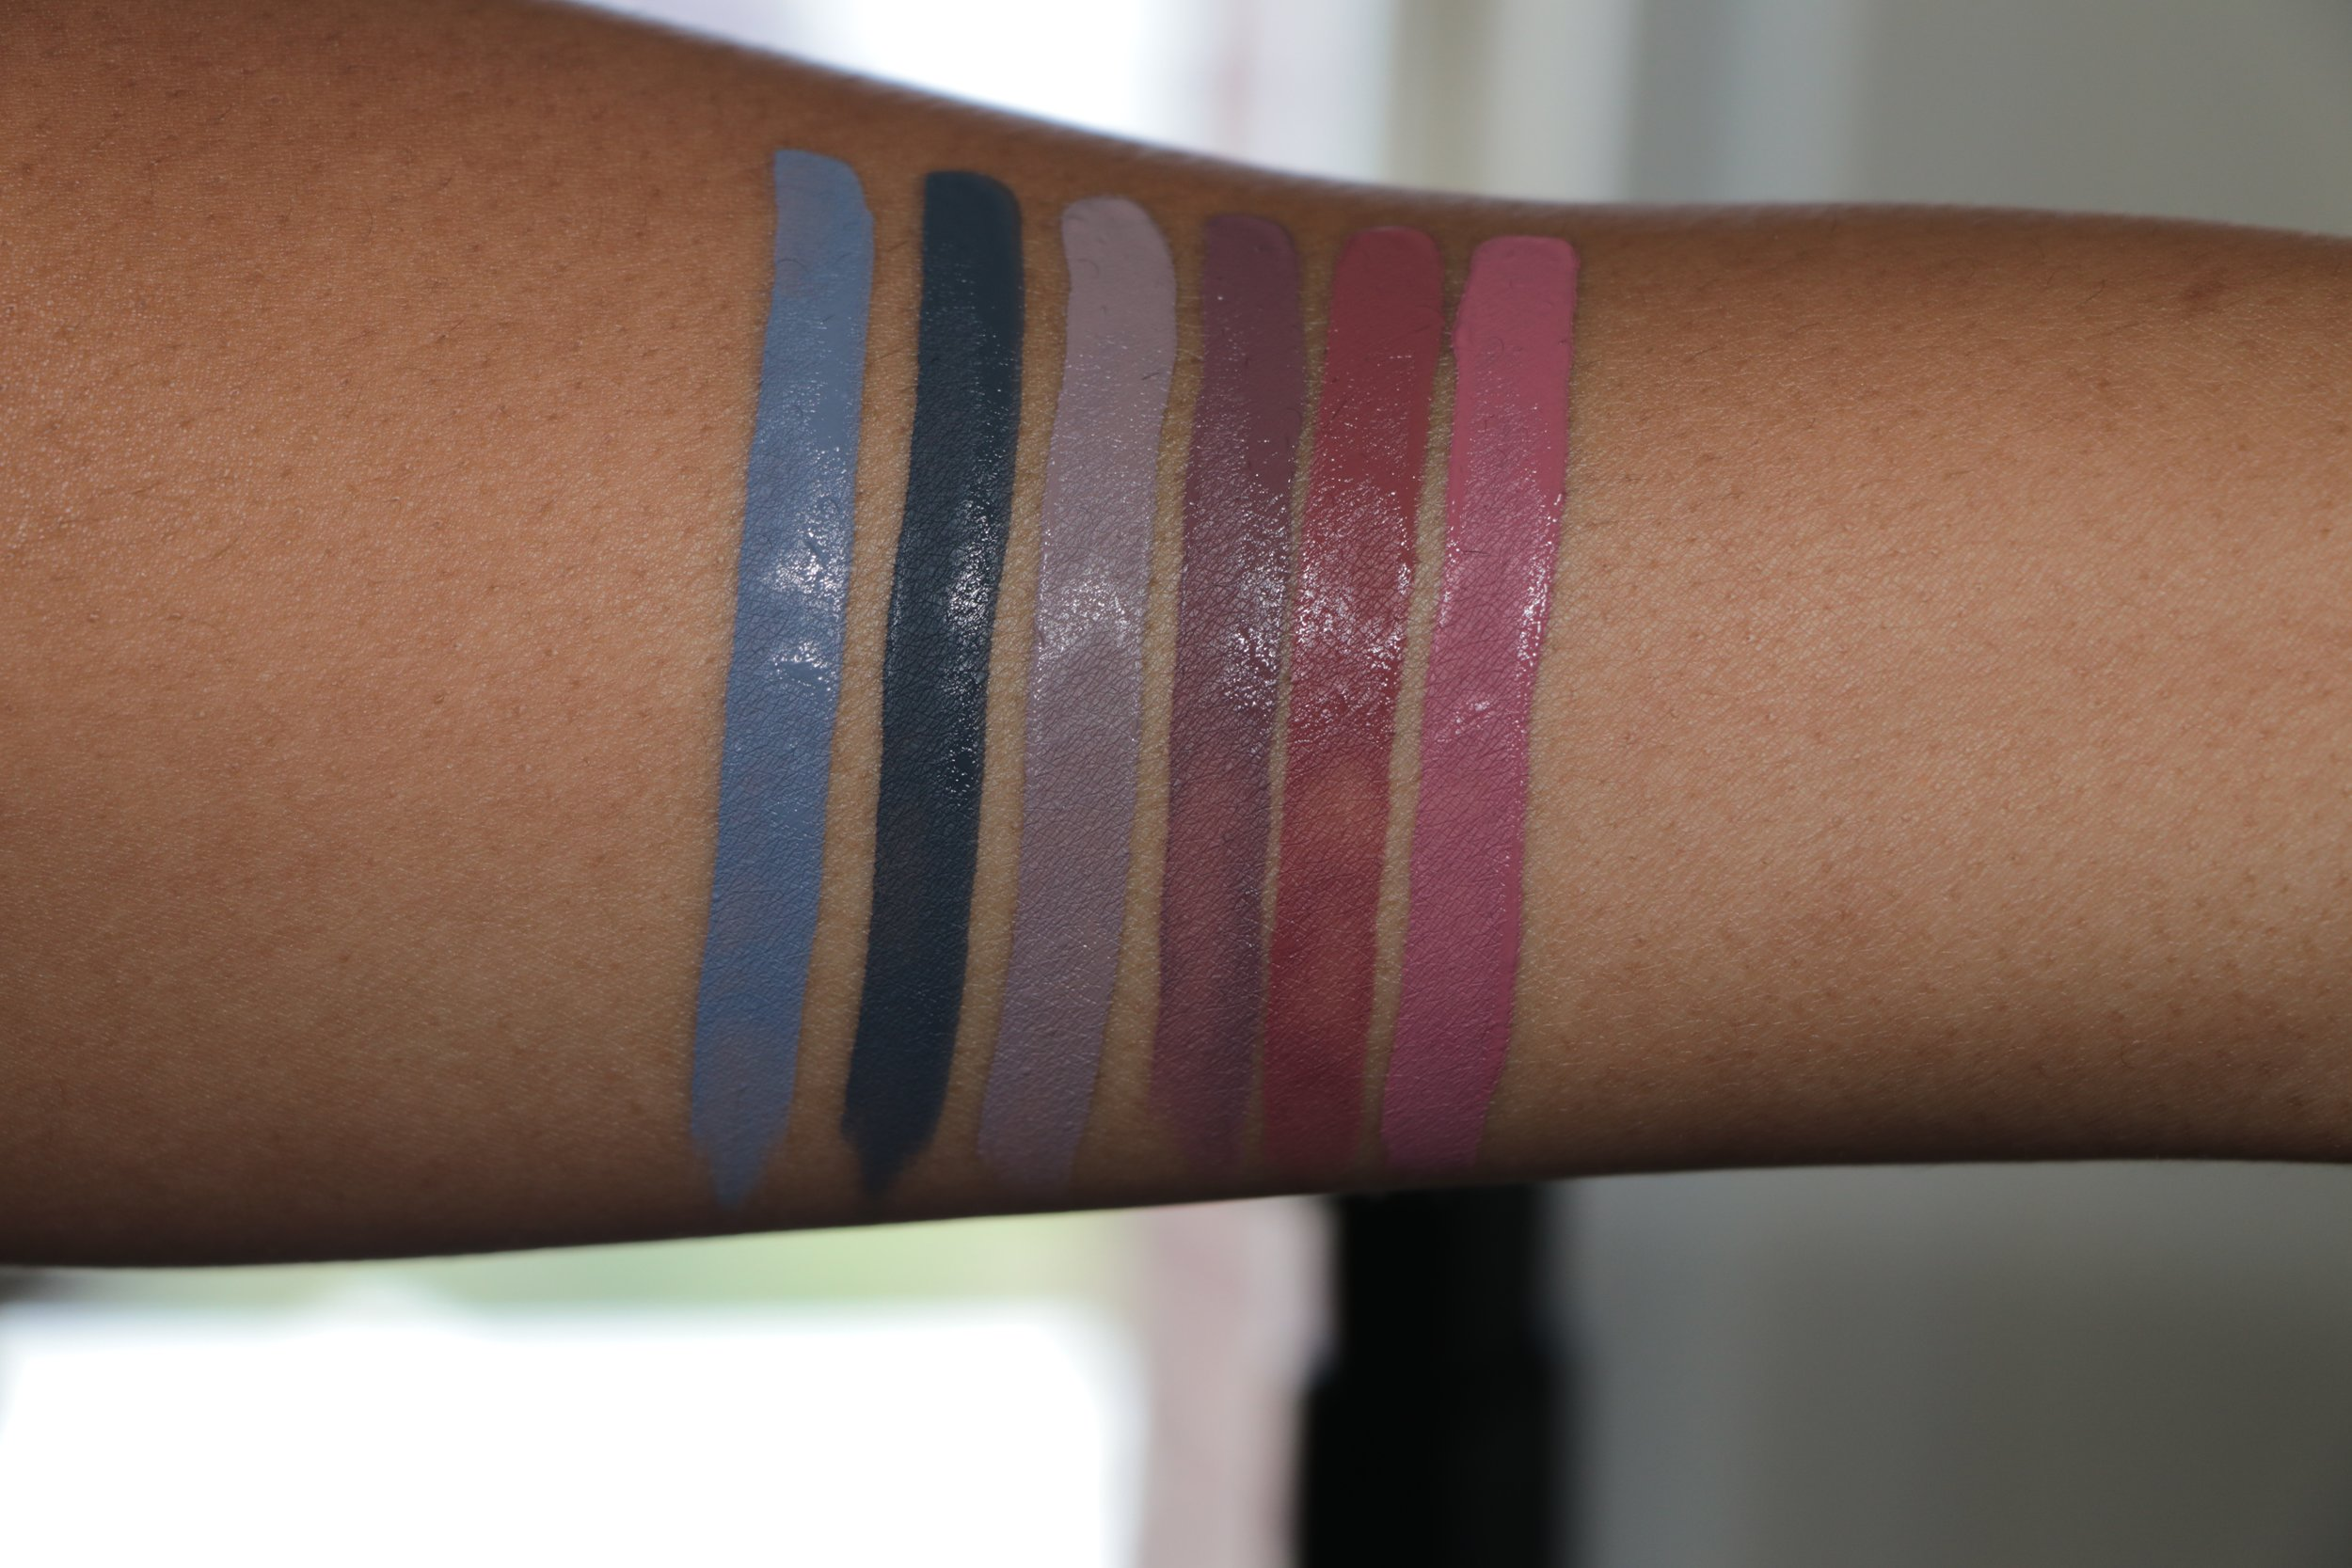 Swatch from left to right- Dagger, Woolf, Haze II, Haze, Lolita, Lovecraft